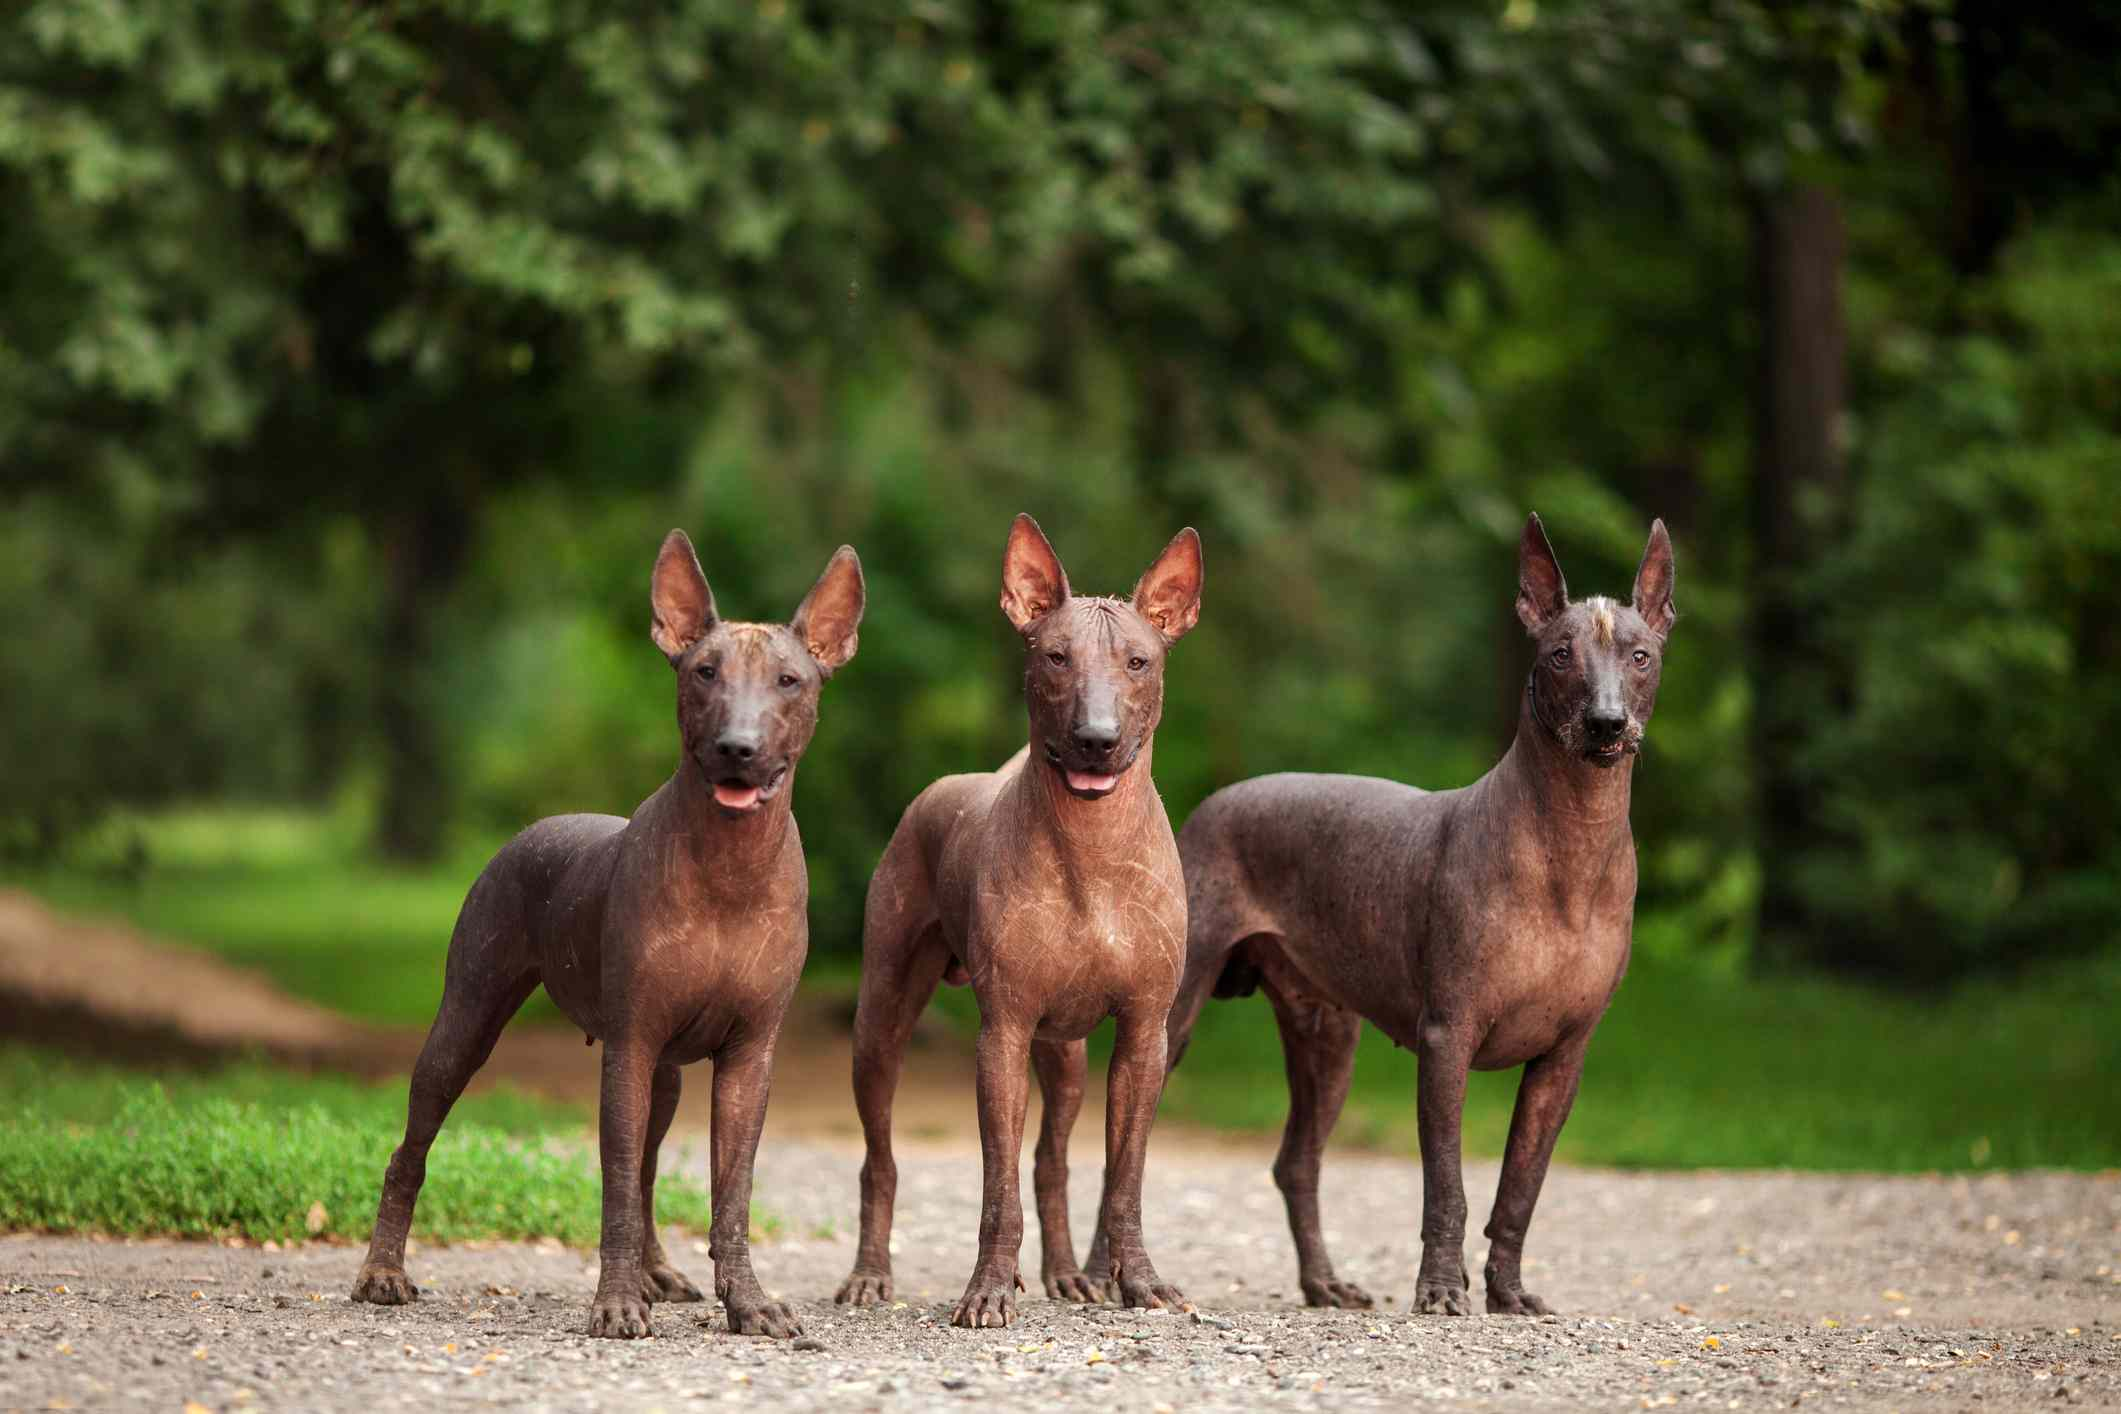 Xoloitzcuintli (Mexican Hairless Dog) Mexican Hairless Dog by thevetscare.com